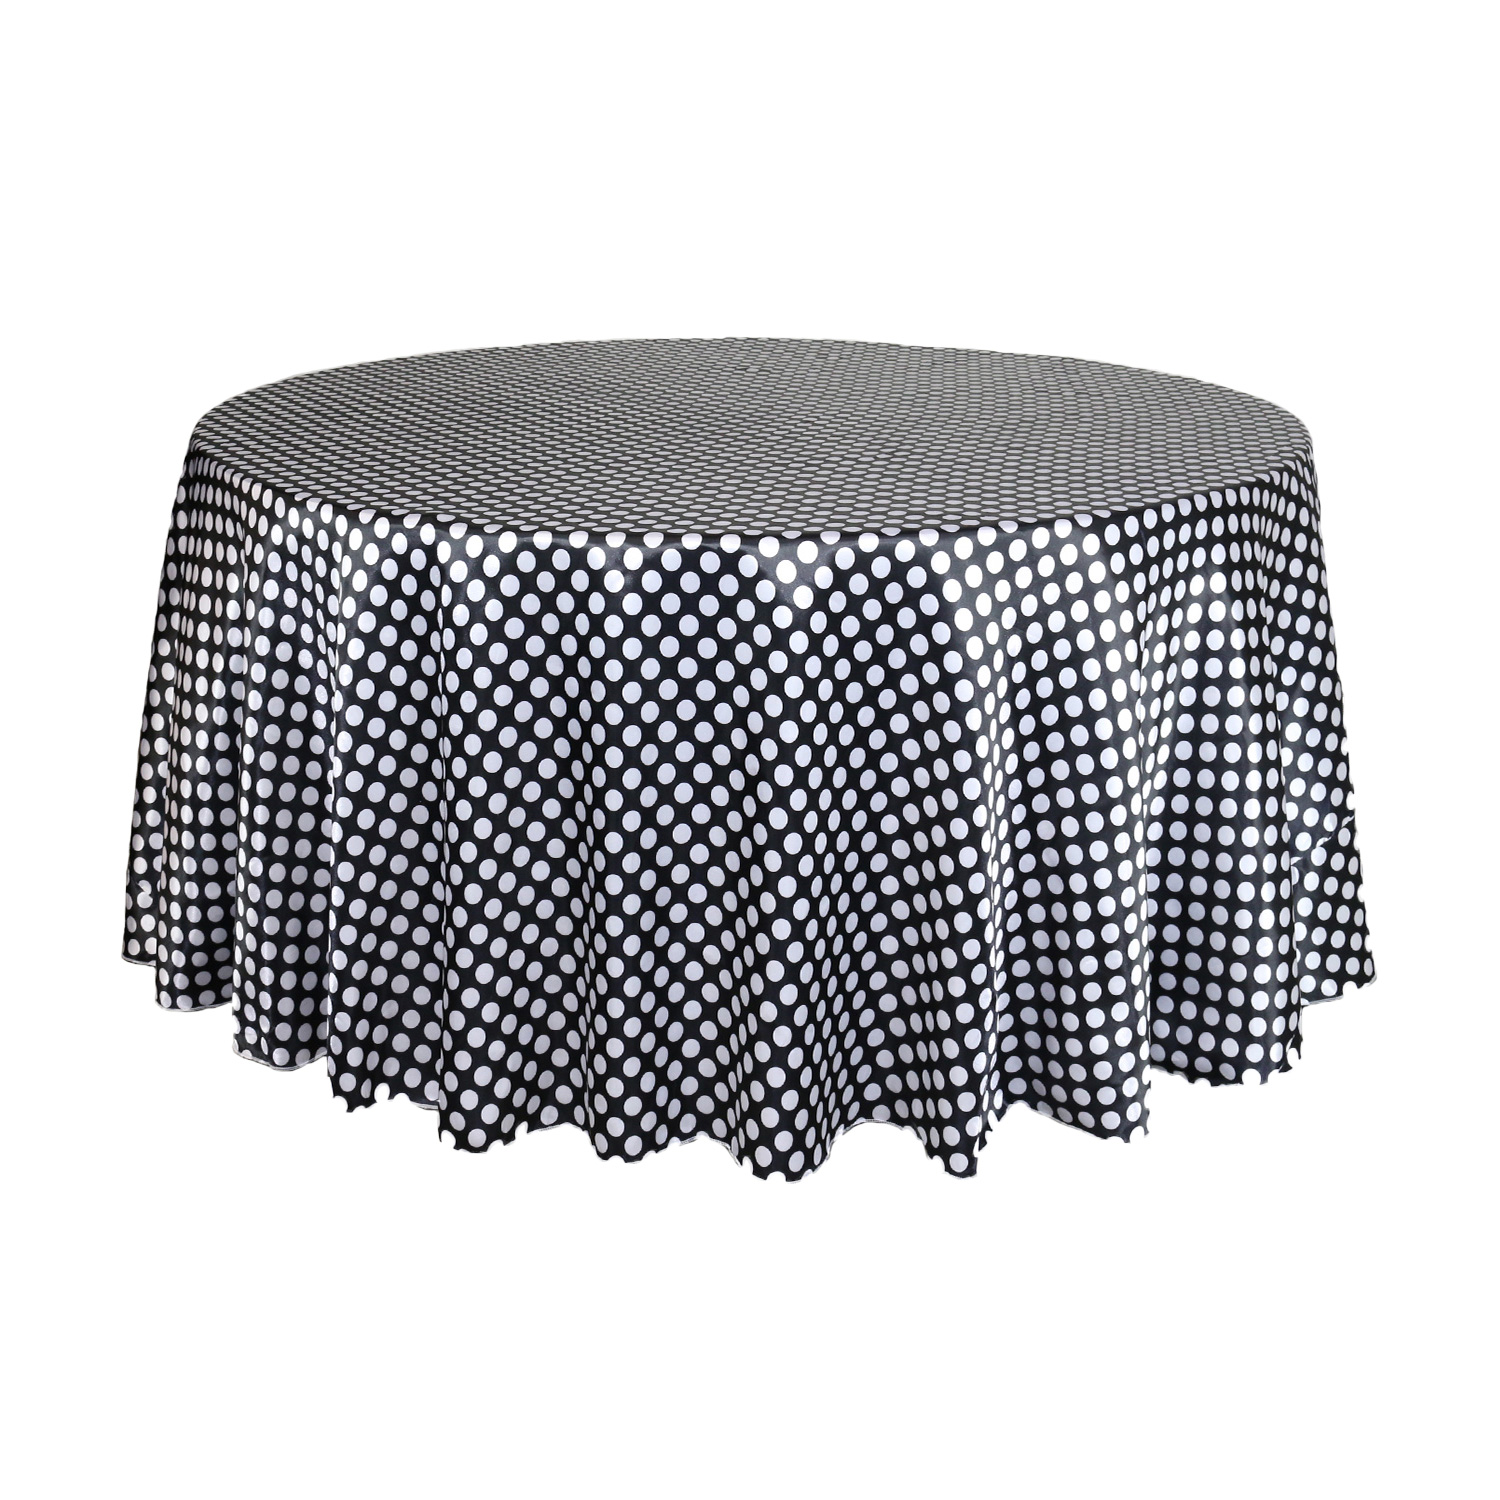 Cotton Table Cloth Polka Dots  Spots Small Dots White on Navy